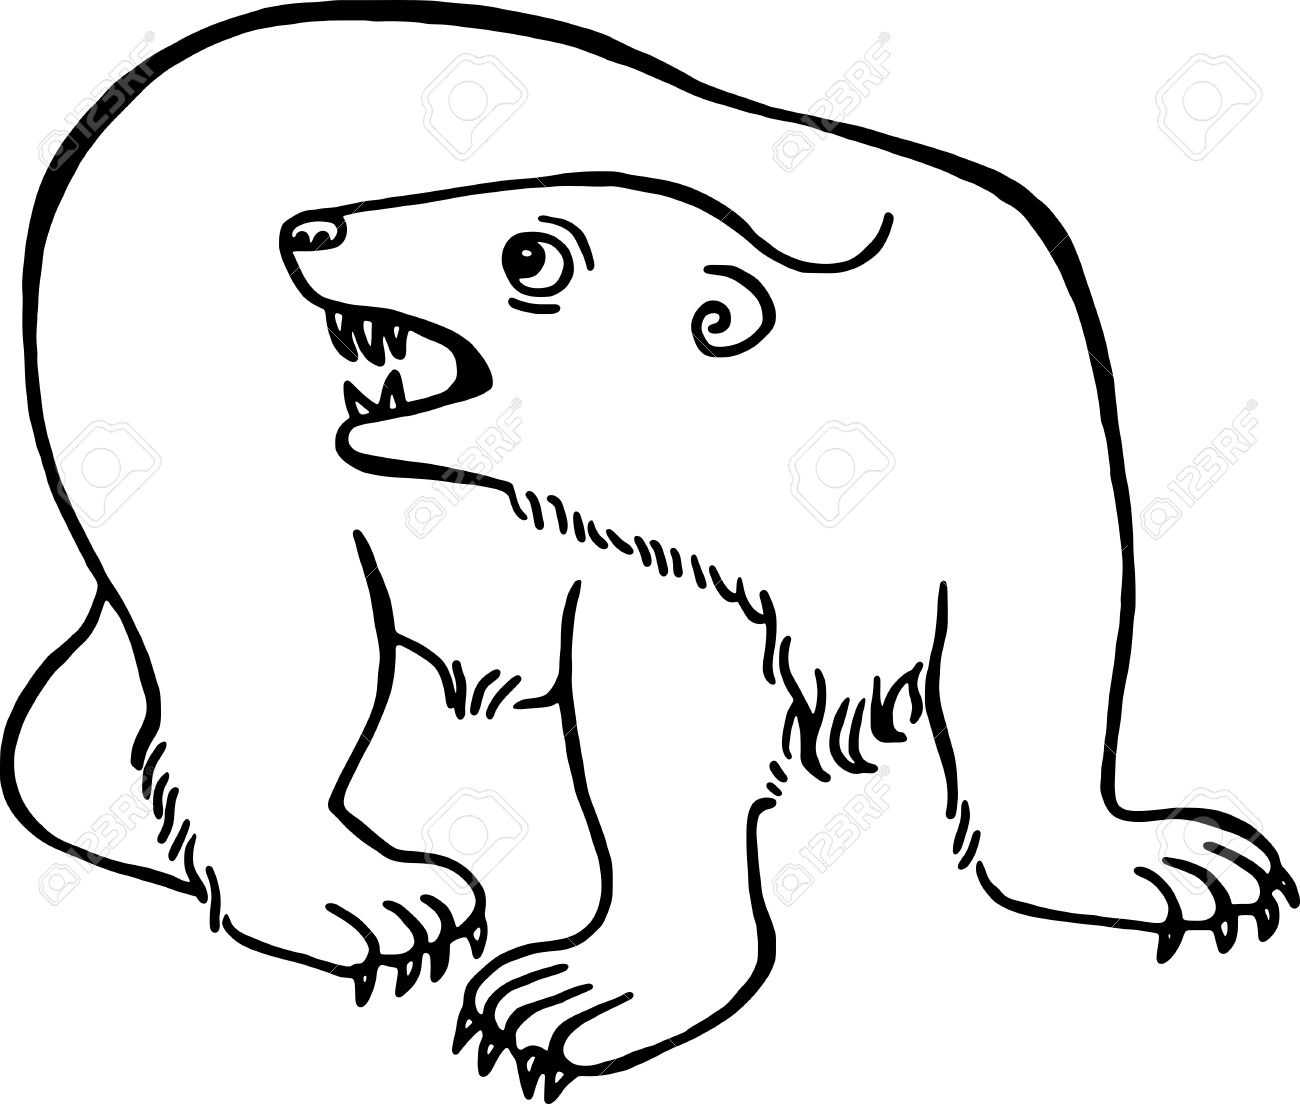 1300x1104 Simple Black And White Line Drawing Of A Polar Bear. Stock Photo